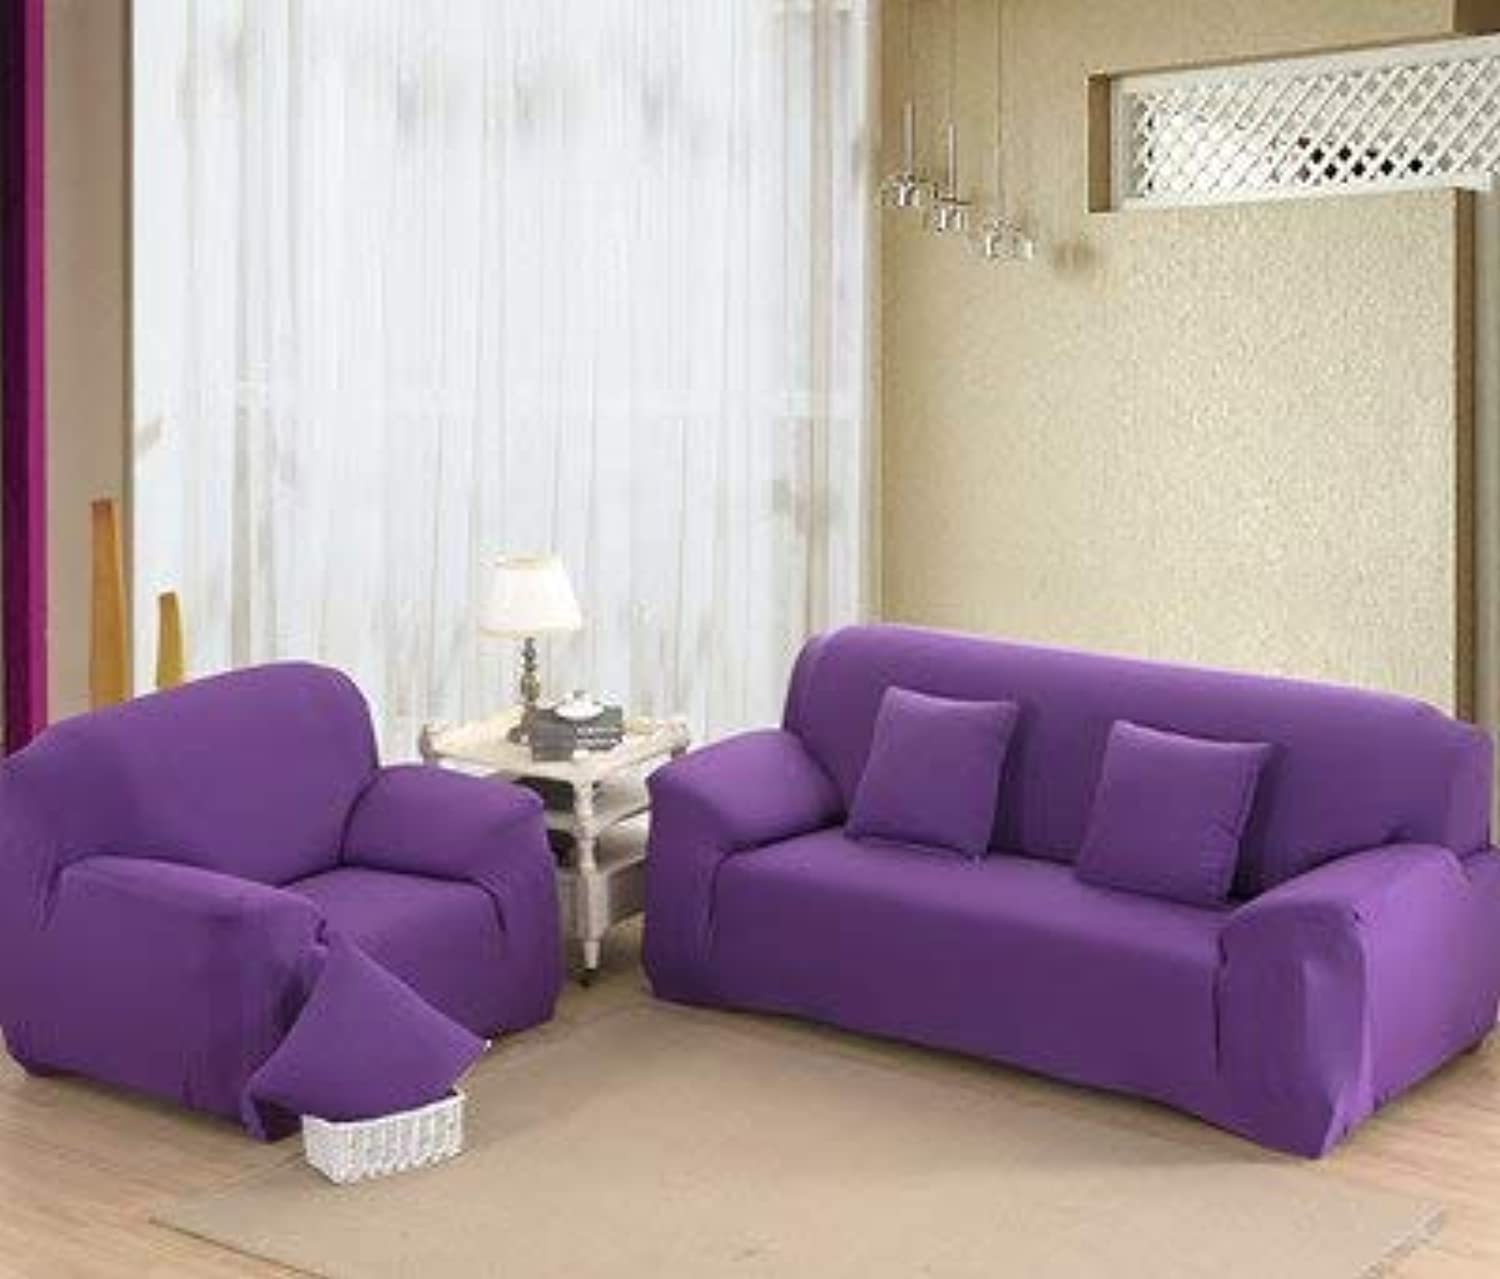 Farmerly KISS Queen Solid Sofa Cover Elastic Knitted Fabric slipcovers All-Inclusive Couch case for All Size Shape Sofa   Purple, 90-140cm